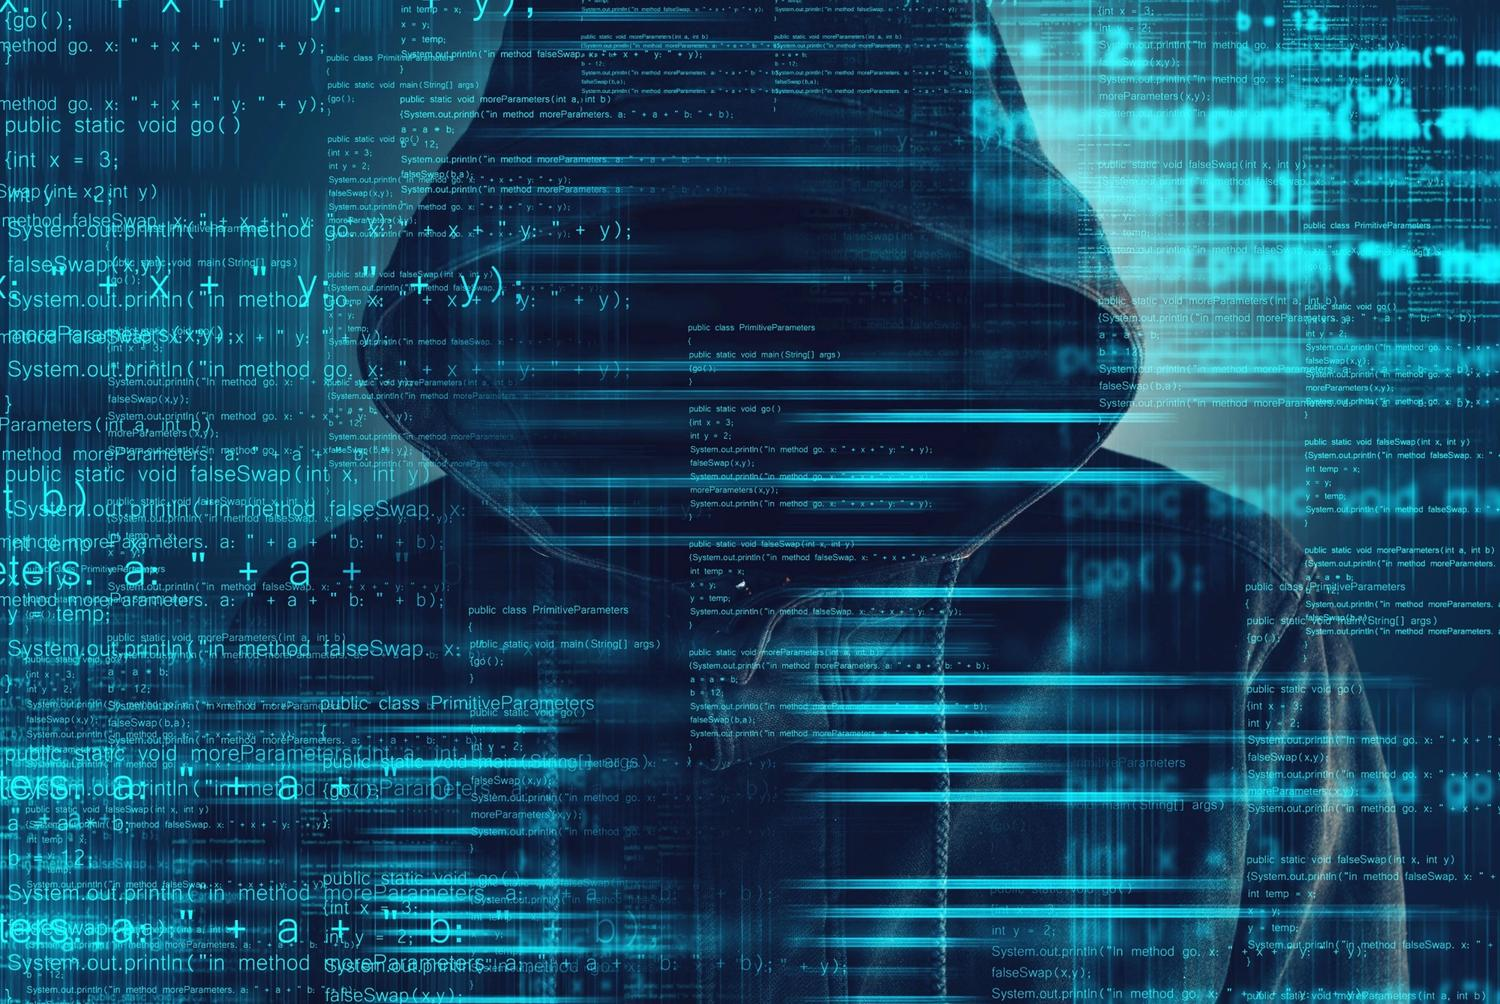 Security alert: the cyber threats on the rise in 2021 | RPI